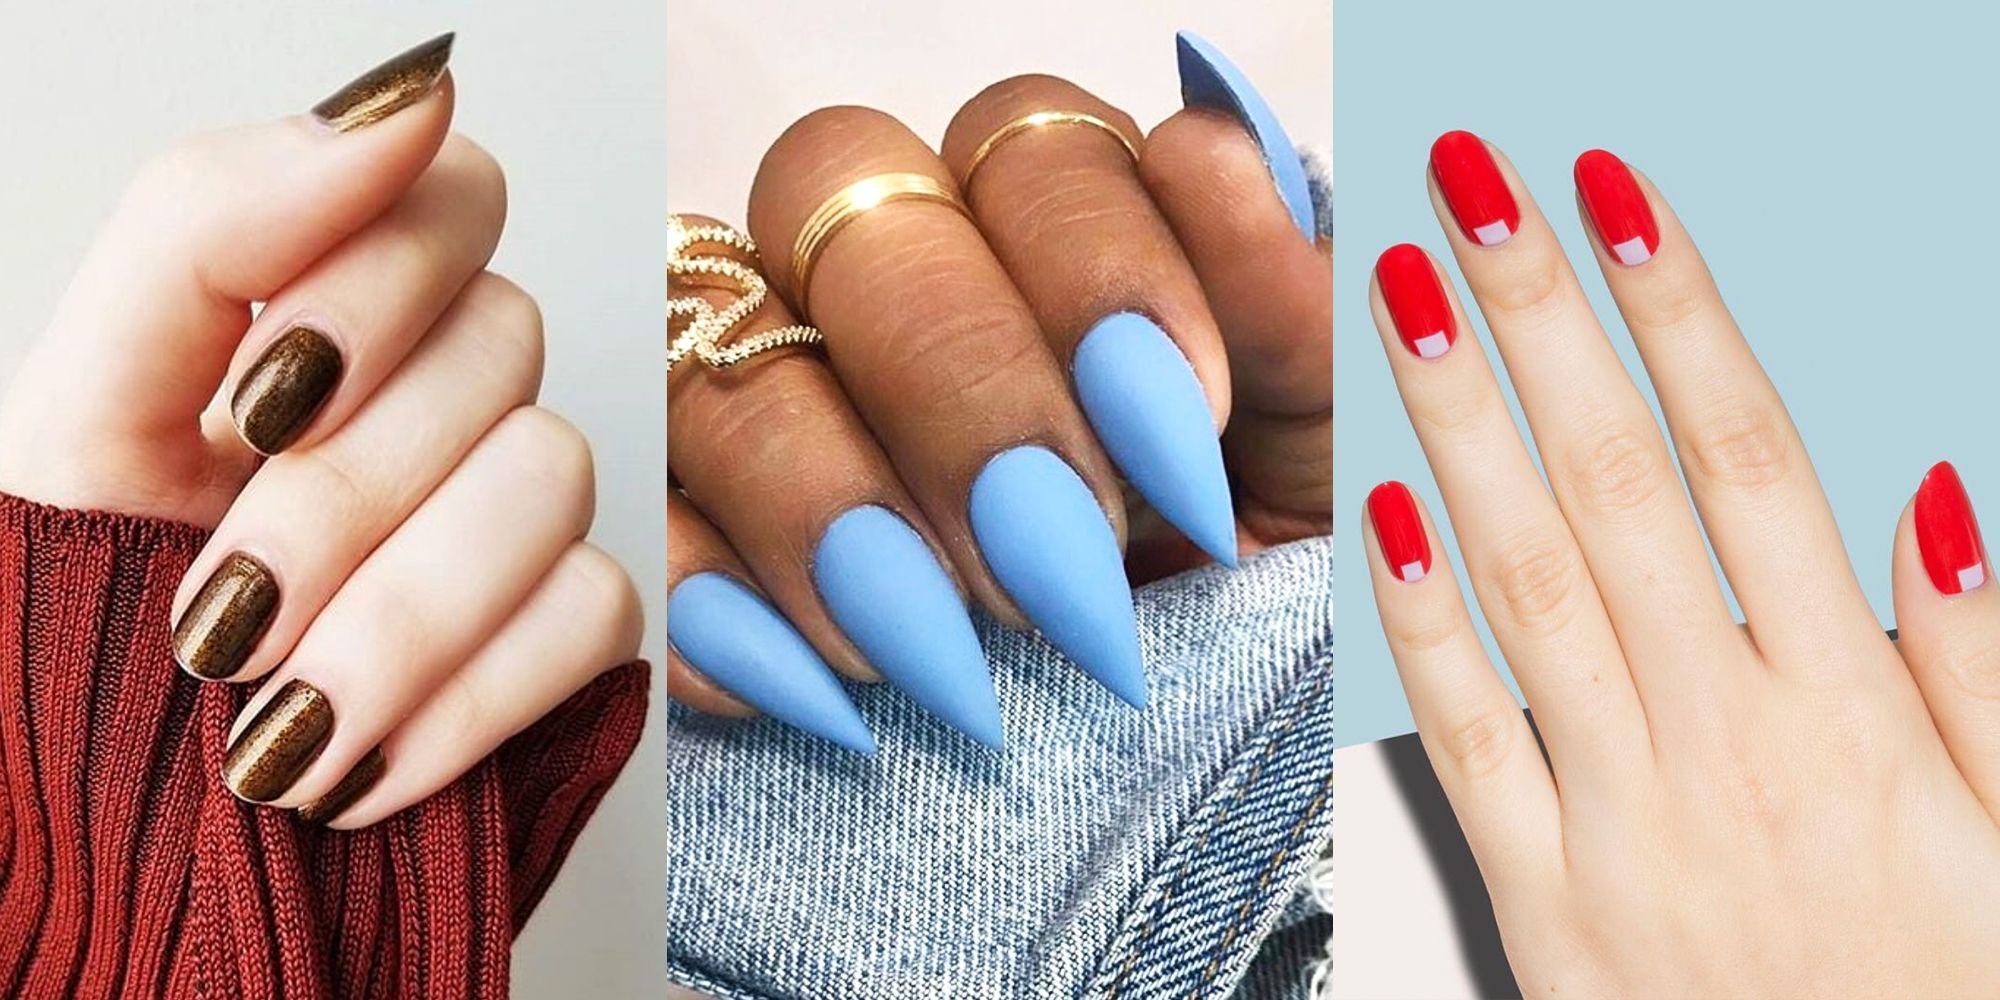 10 Best Nail Shapes of 2020 , What Nail Shape Is Best for